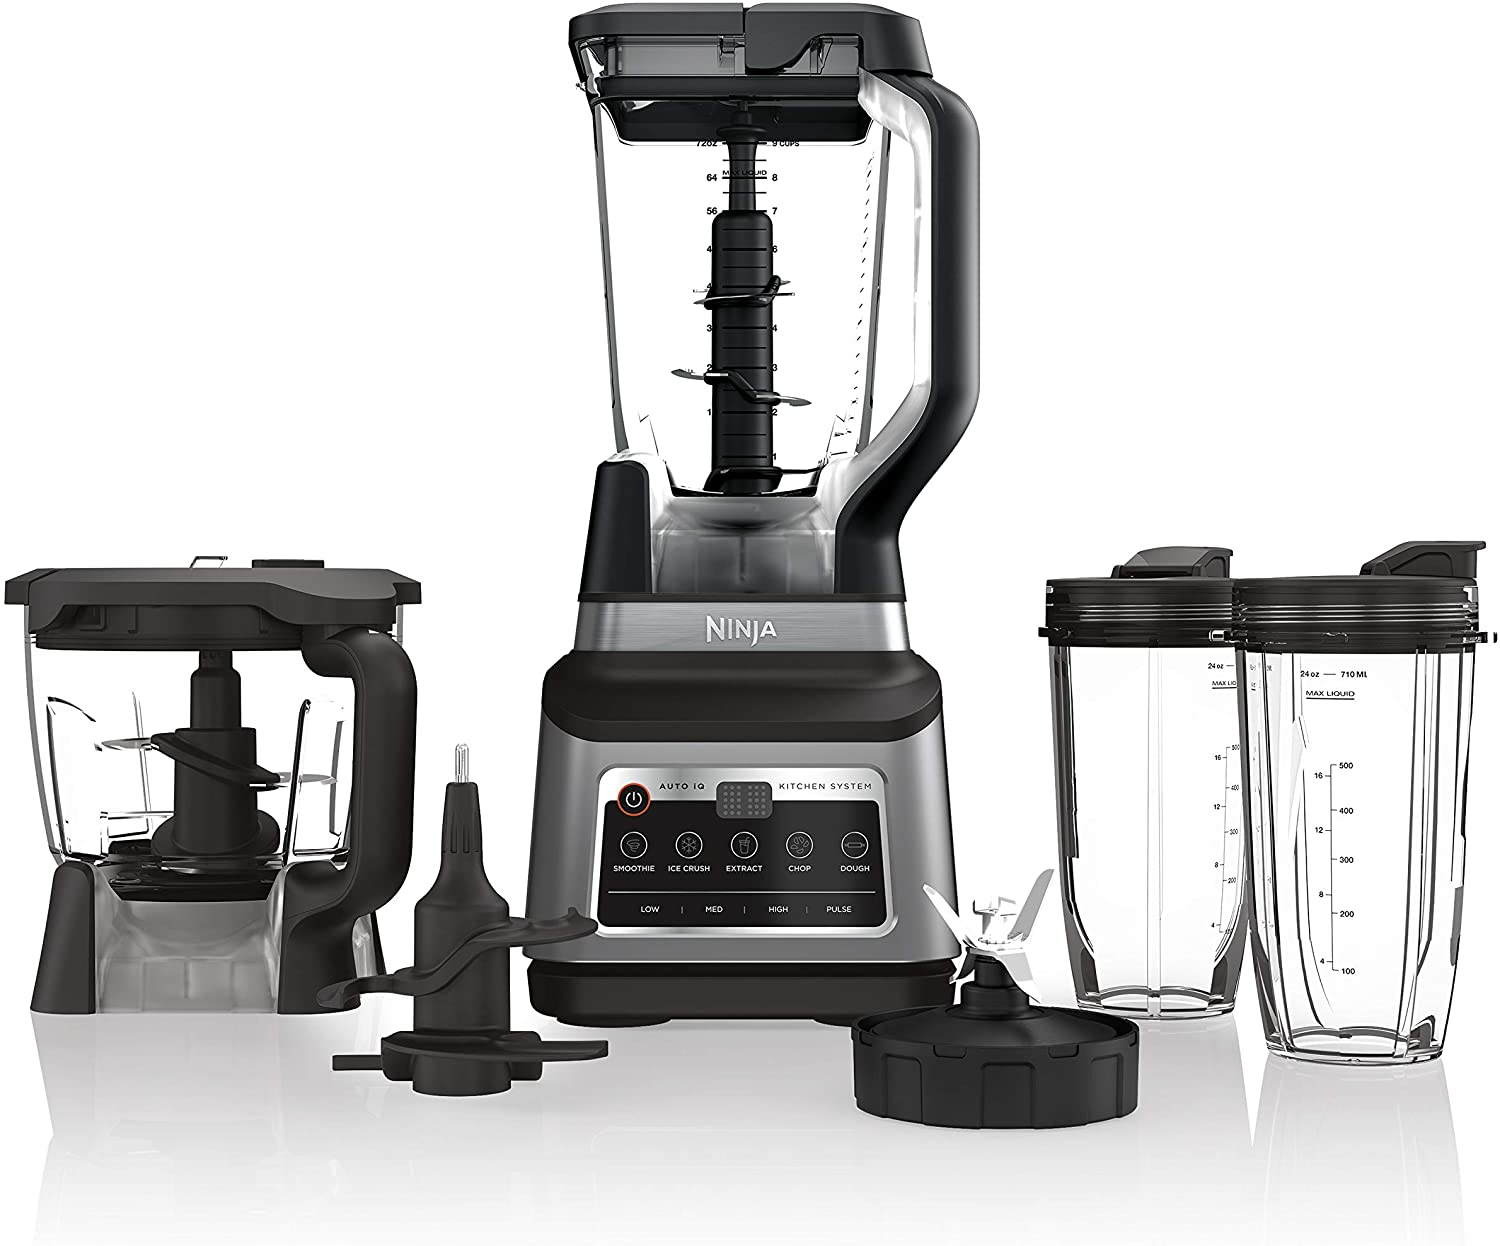 Ninja Professional blender with chopping attachment, blades, and two travel cups